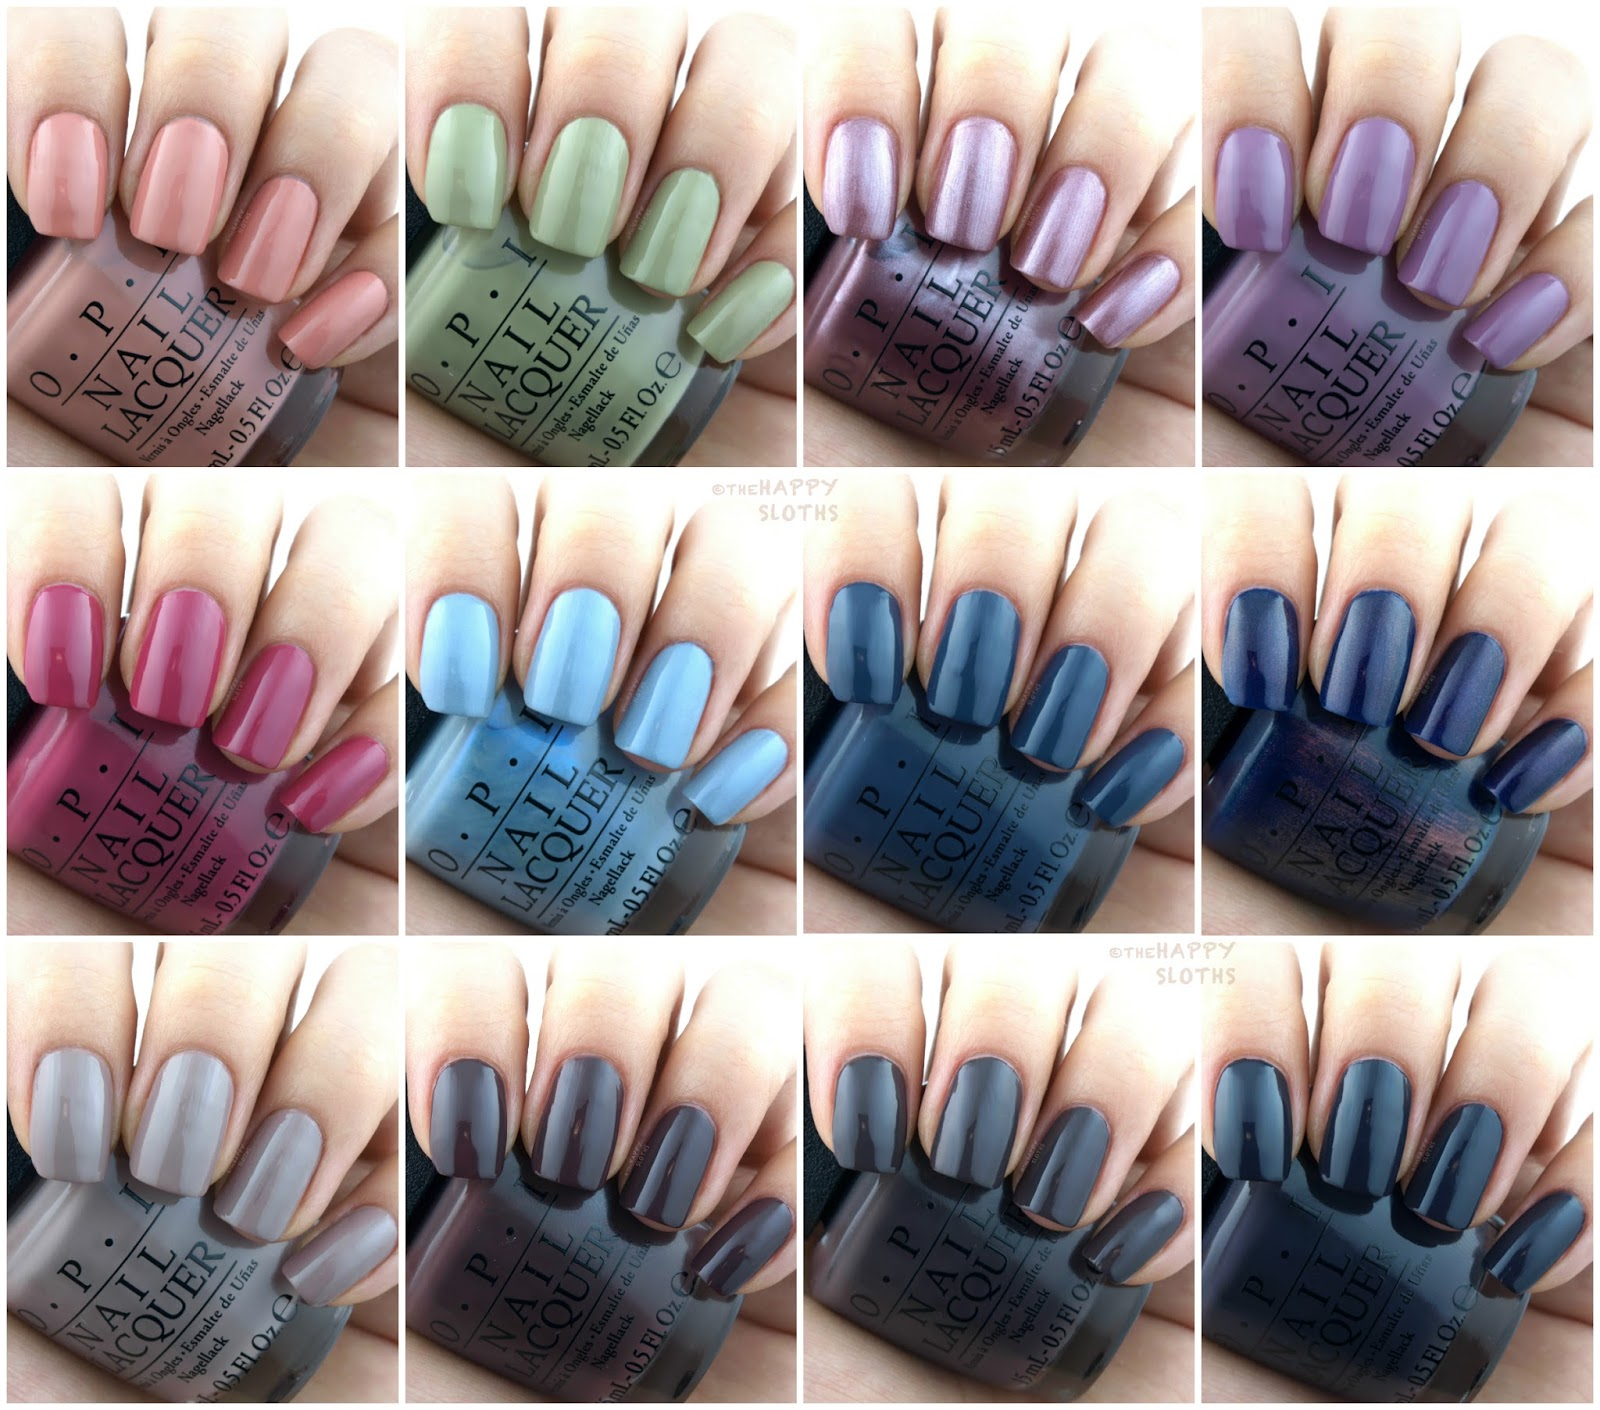 opi-iceland-fall-2017-collection-swatches-review.jpg